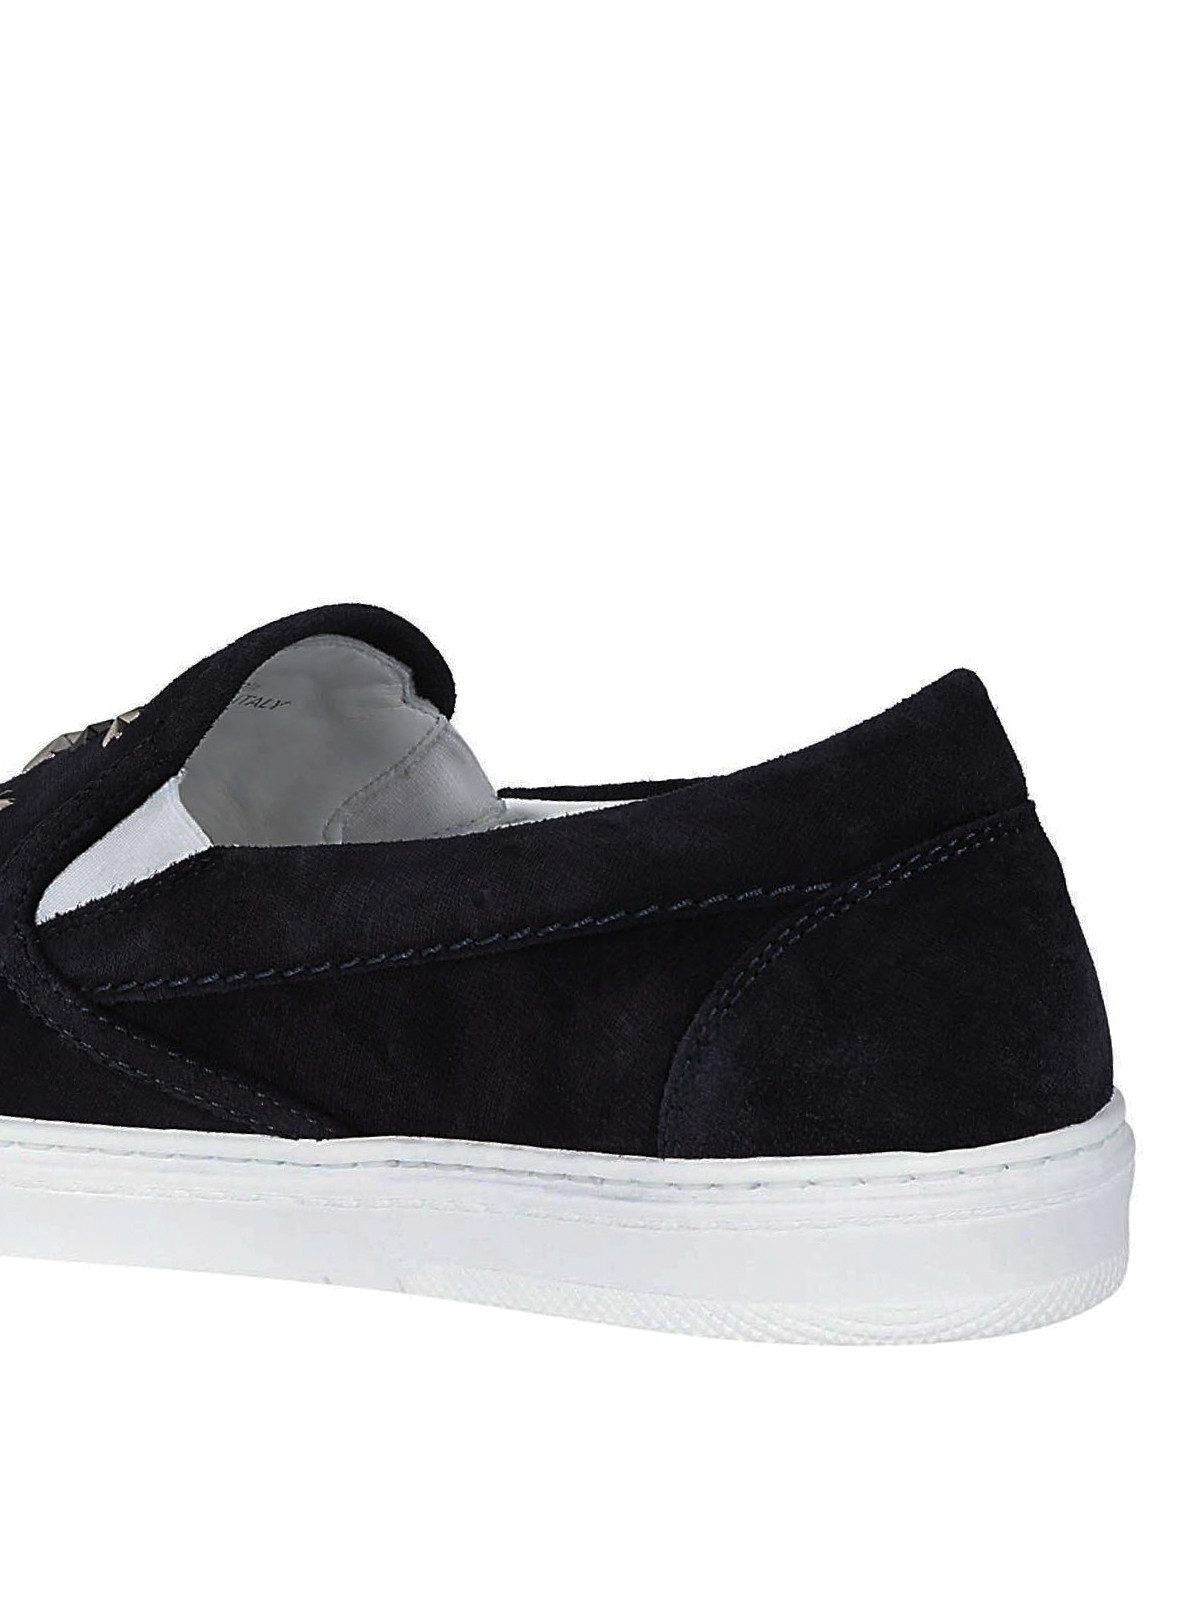 8954a29e8a4 Jimmy Choo - Grove navy suede slip-on sneakers - trainers - GROVE ...